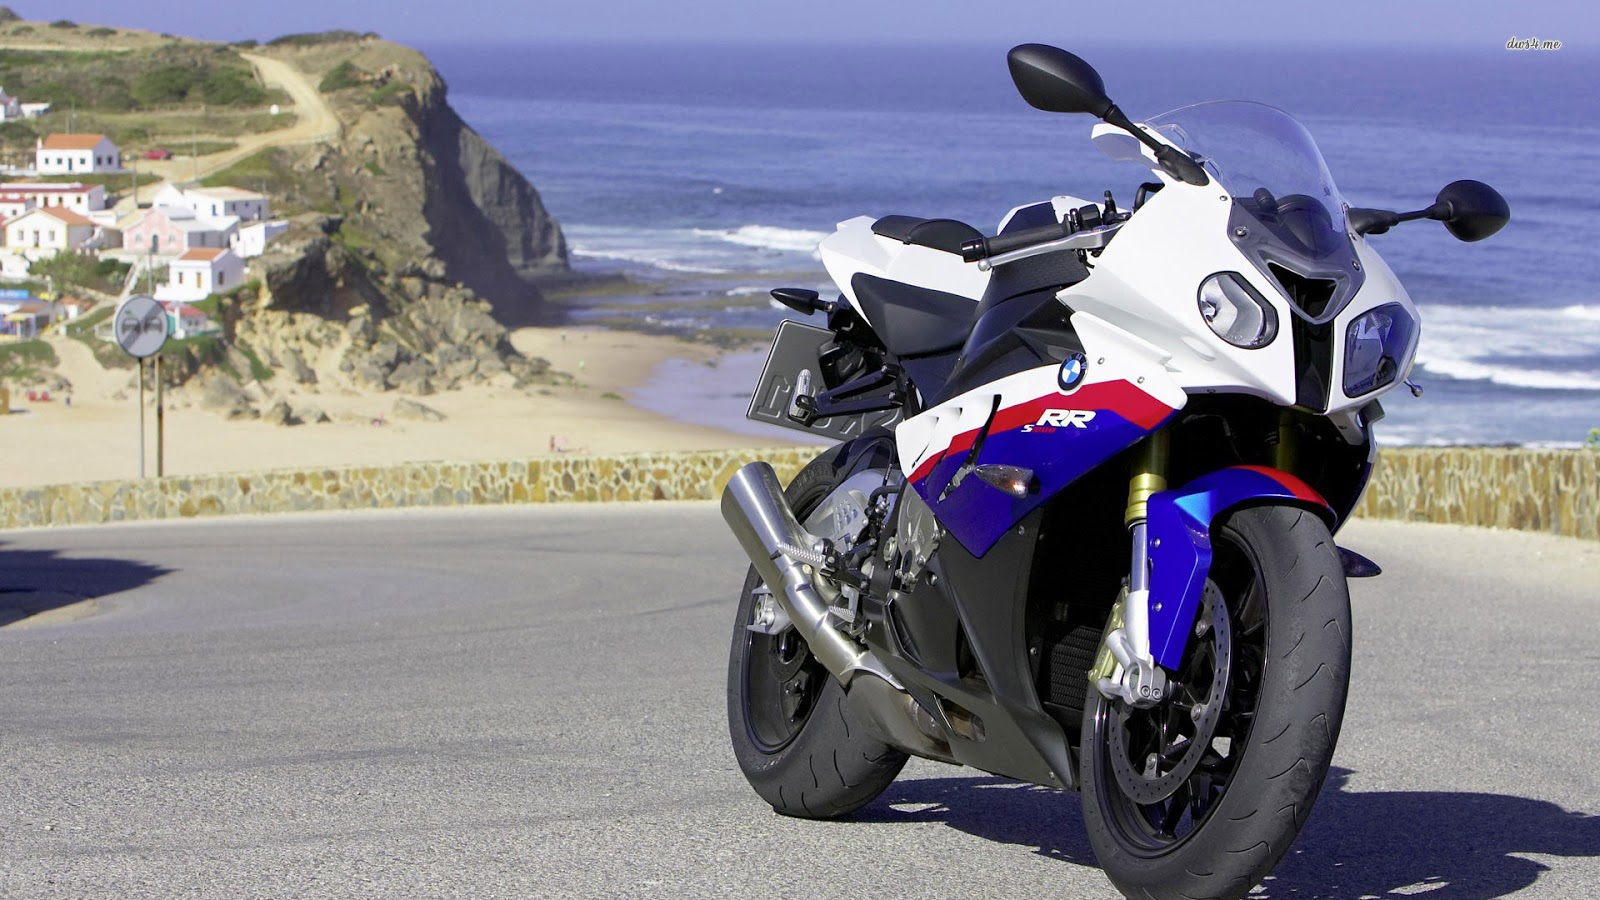 Bmw s1000rr superbike 35 hd wallpapers all latest new old car hd image collection